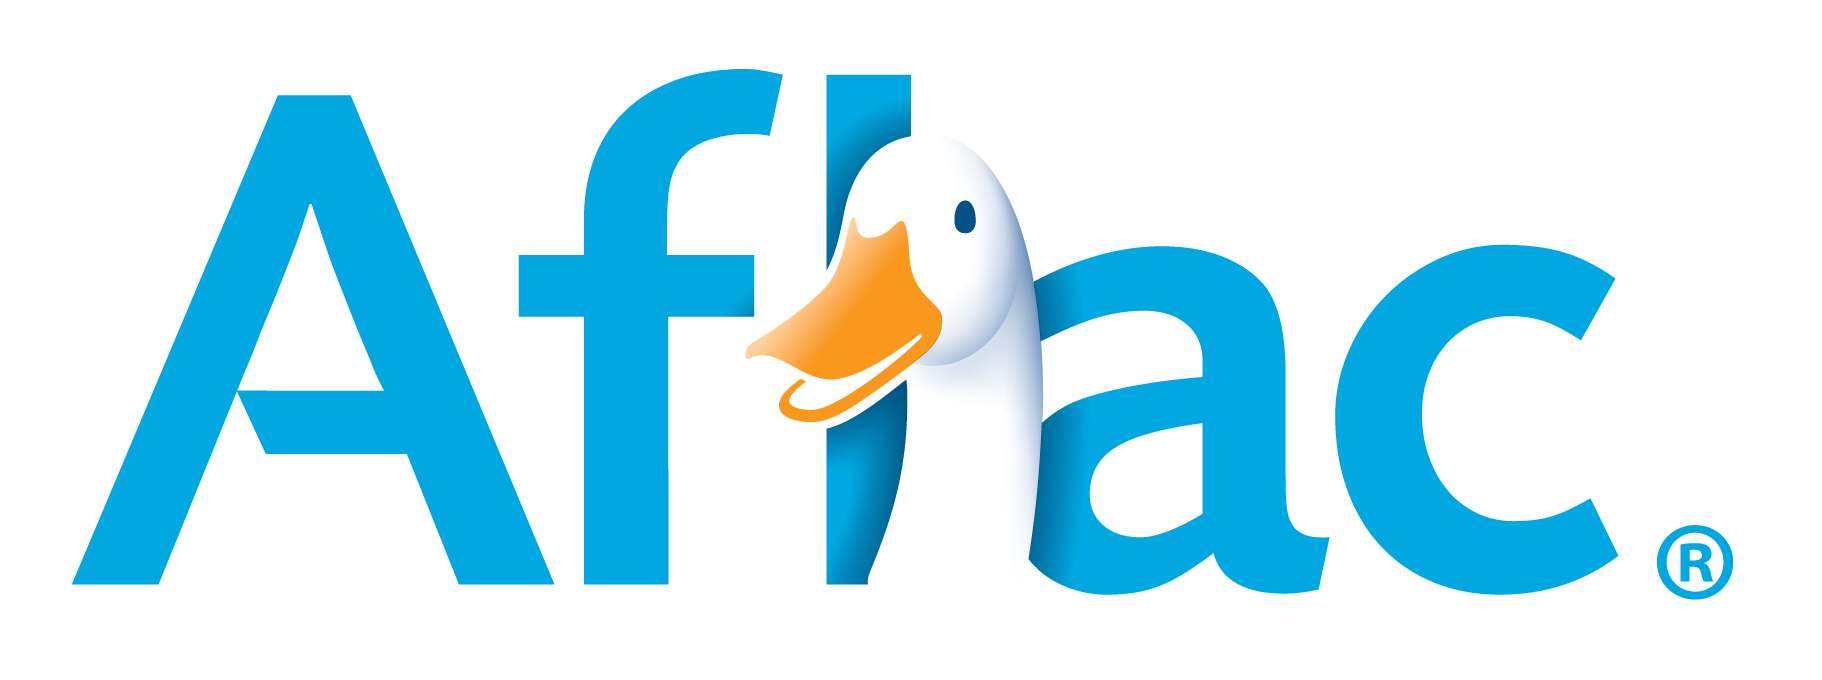 Download Aflac Logo Png Image For Free Aflac Insurance Aflac